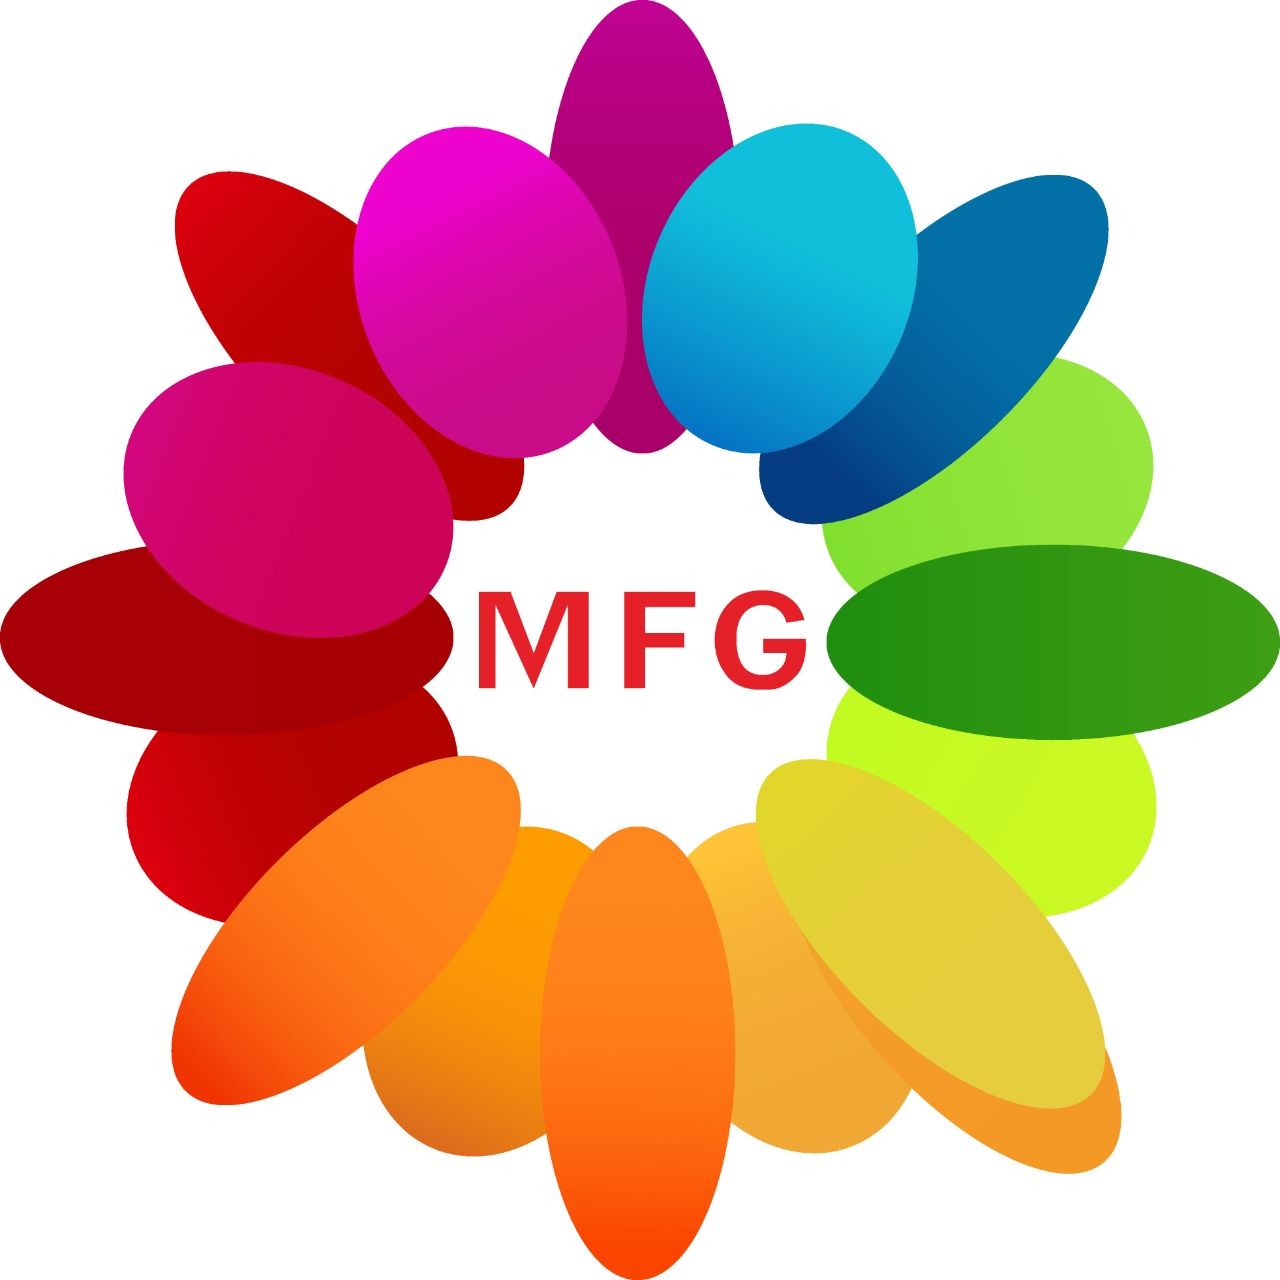 Of 10 red roses with 1 pound chocovanilla cake with 3 dairymilk bunch of 10 red roses with 1 pound chocovanilla cake with 3 dairymilk silk chocolates dhlflorist Images